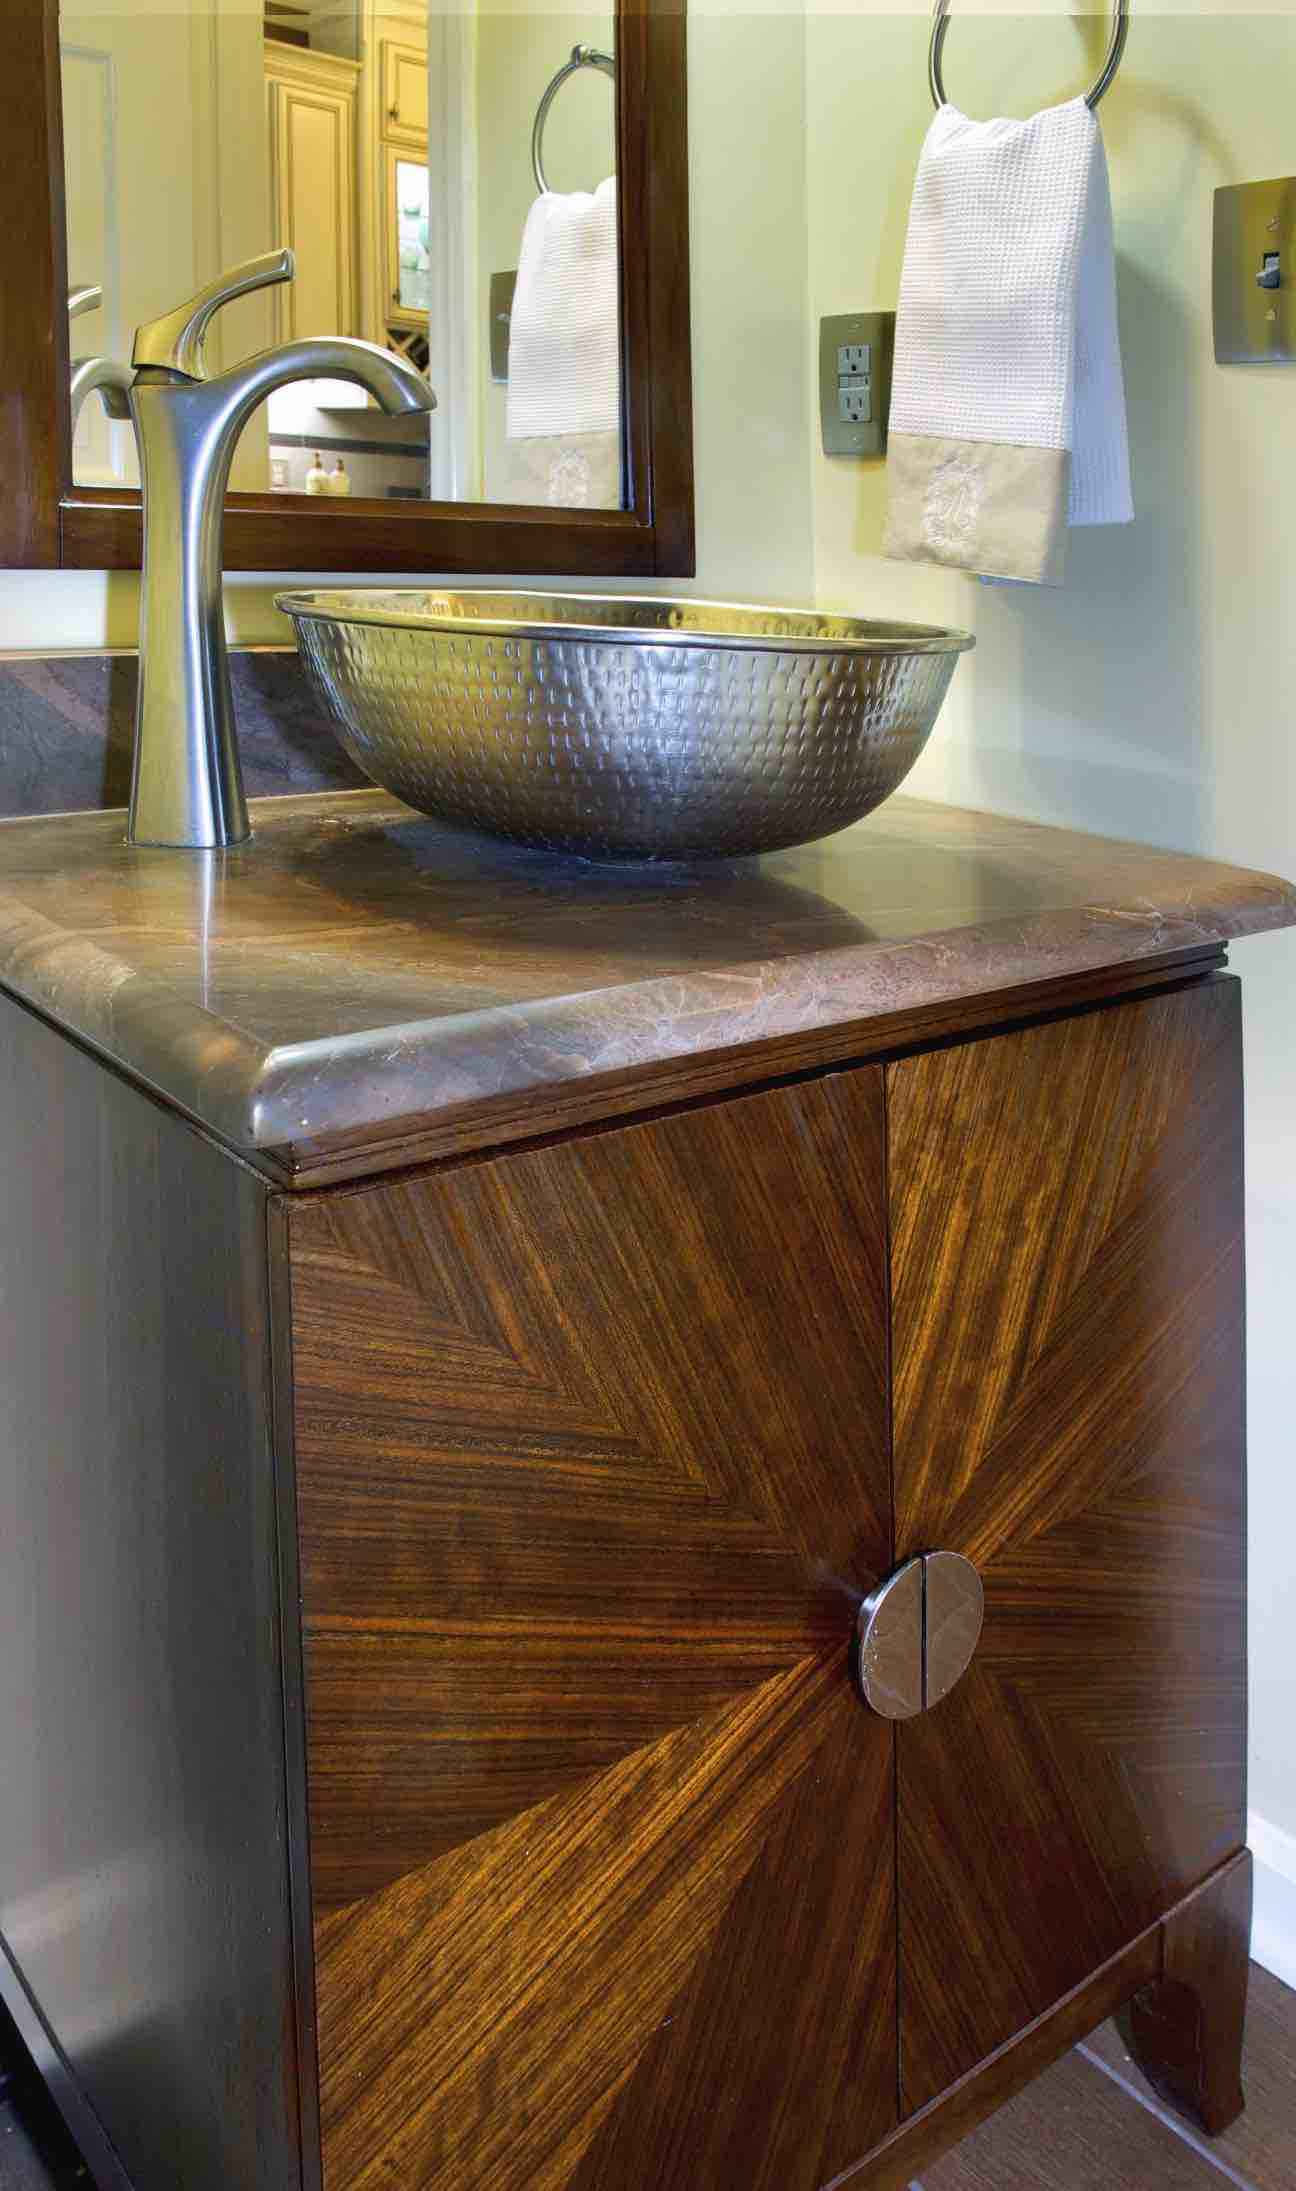 180 Spaces | Interior Design Turnarounds - Power Room remodel featuring hammered vessel sink